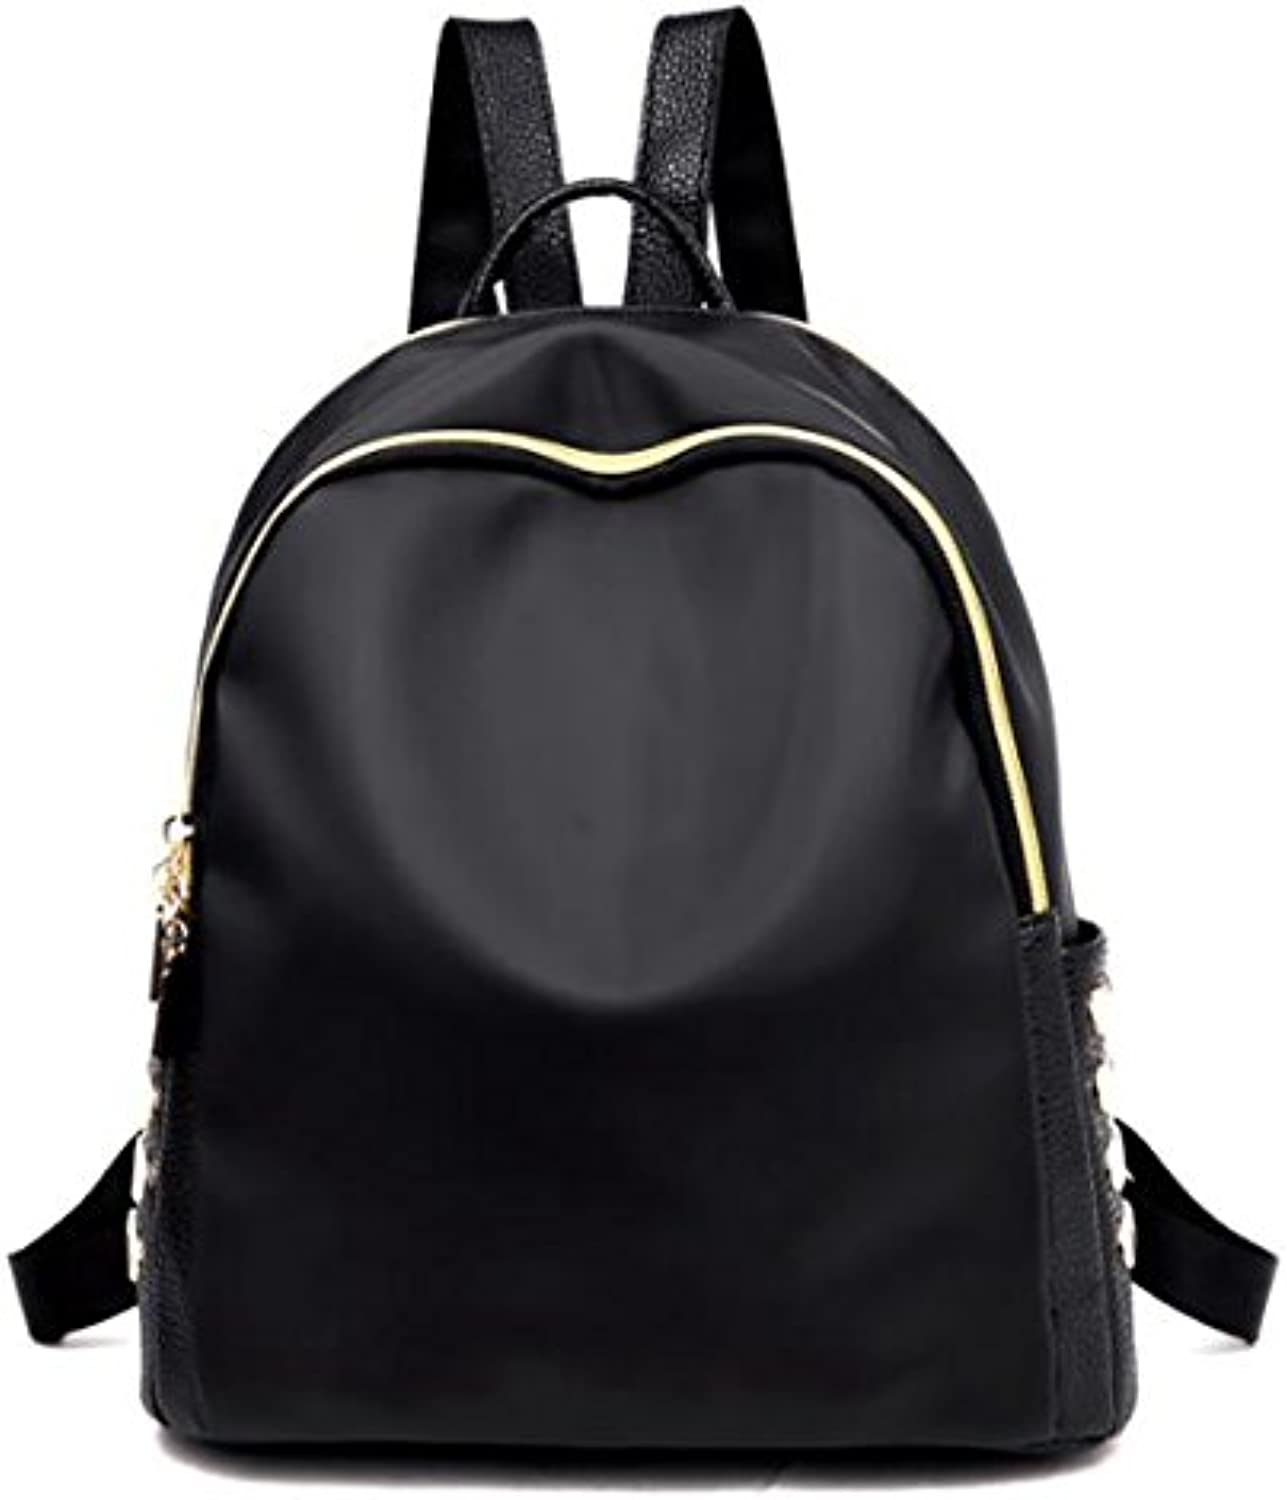 Fashion Backpack,Casual Daypack,Unisex RucksackHype Black Badge Backpack,Laptop Backpack, multicompartment backpack, Classic Backpack, Women Lightweight Backpack, pure black